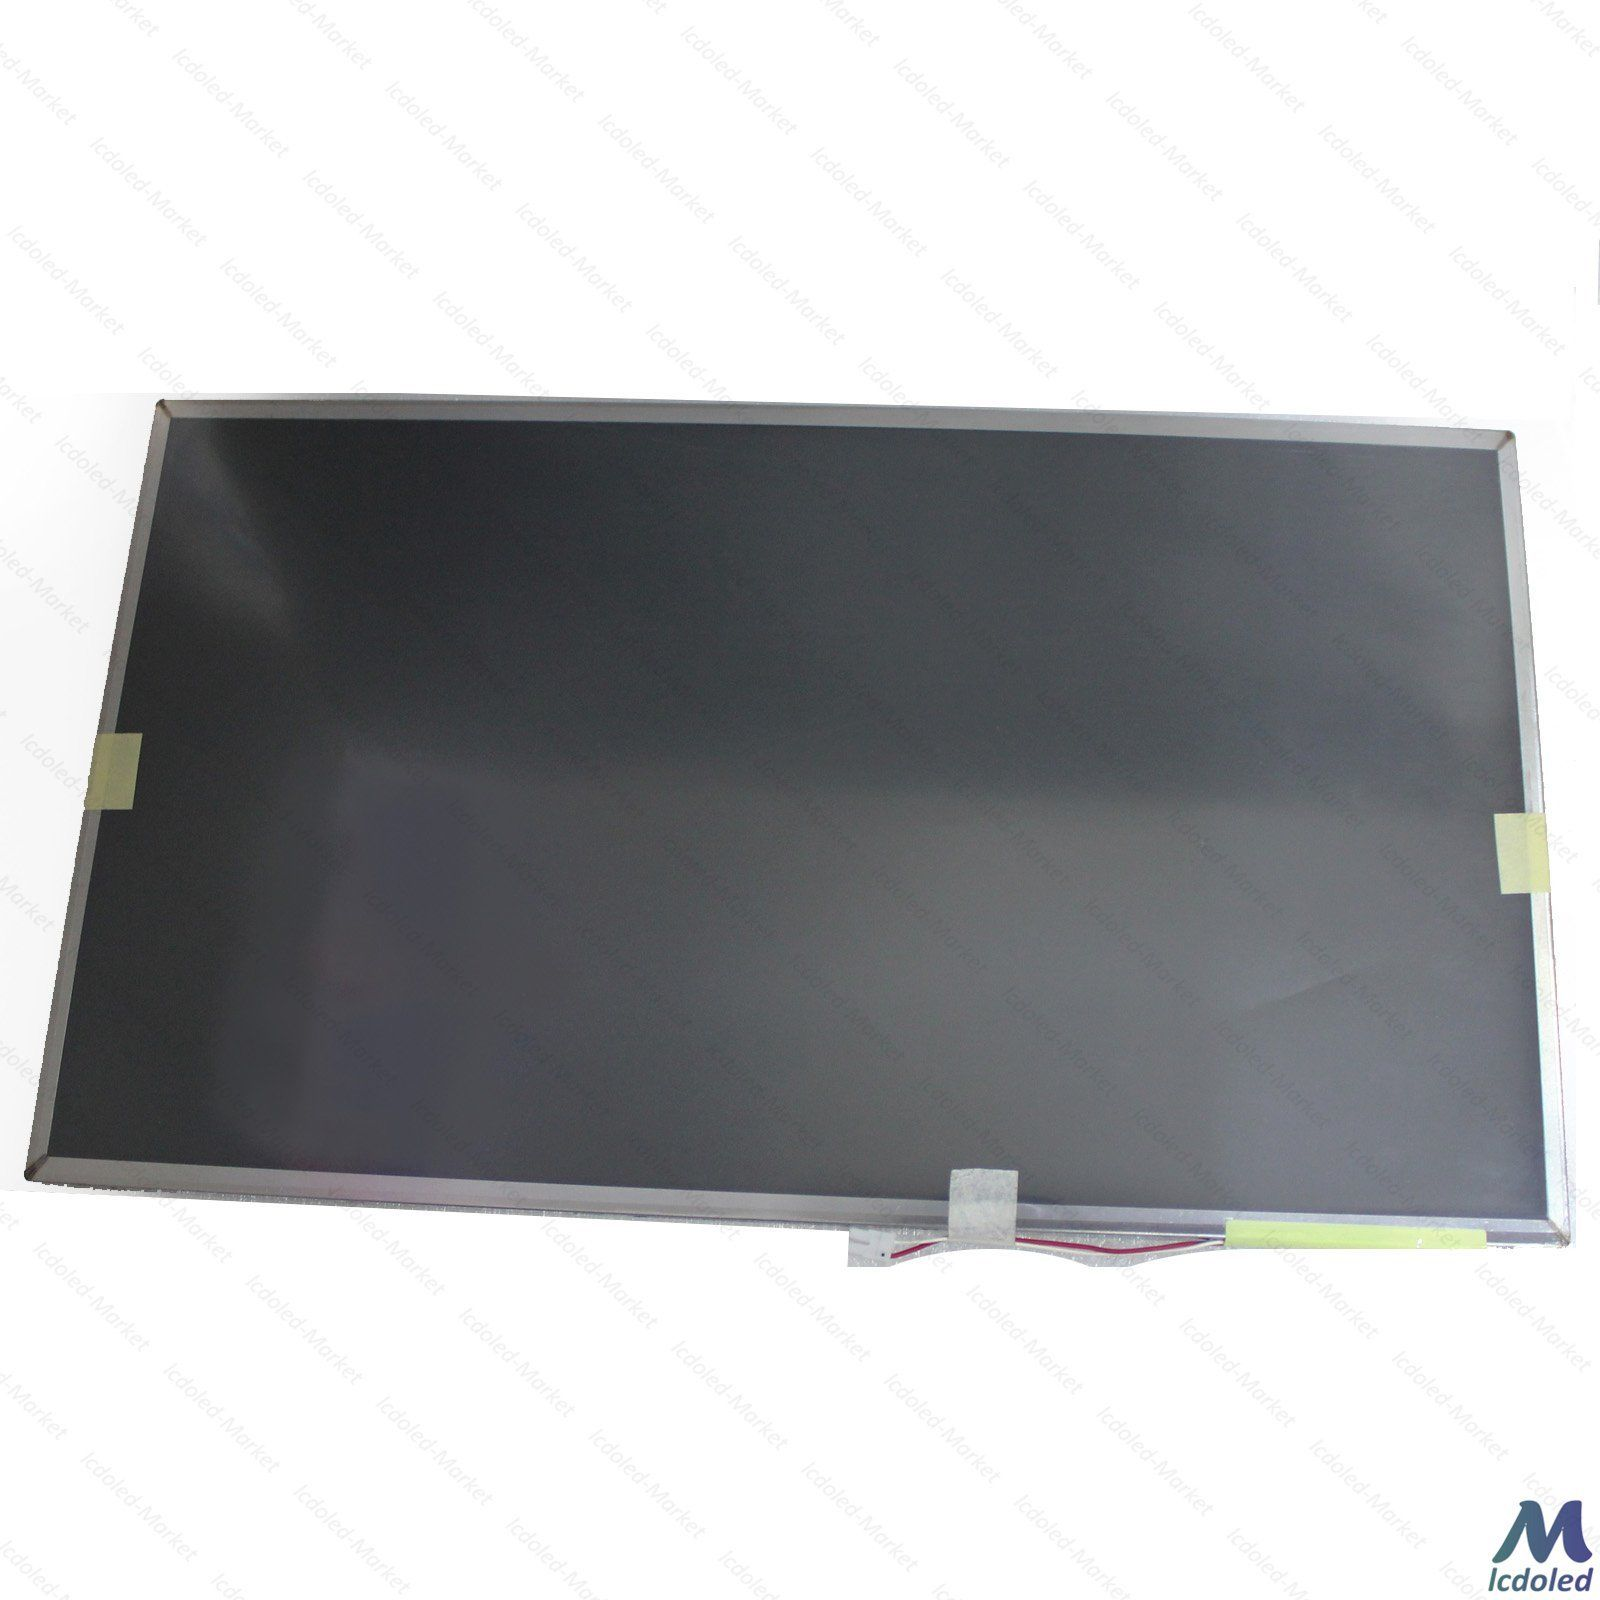 "15.6"" CCFL LCD Screen Panel LTN156AT01-D01 Display Replacement"